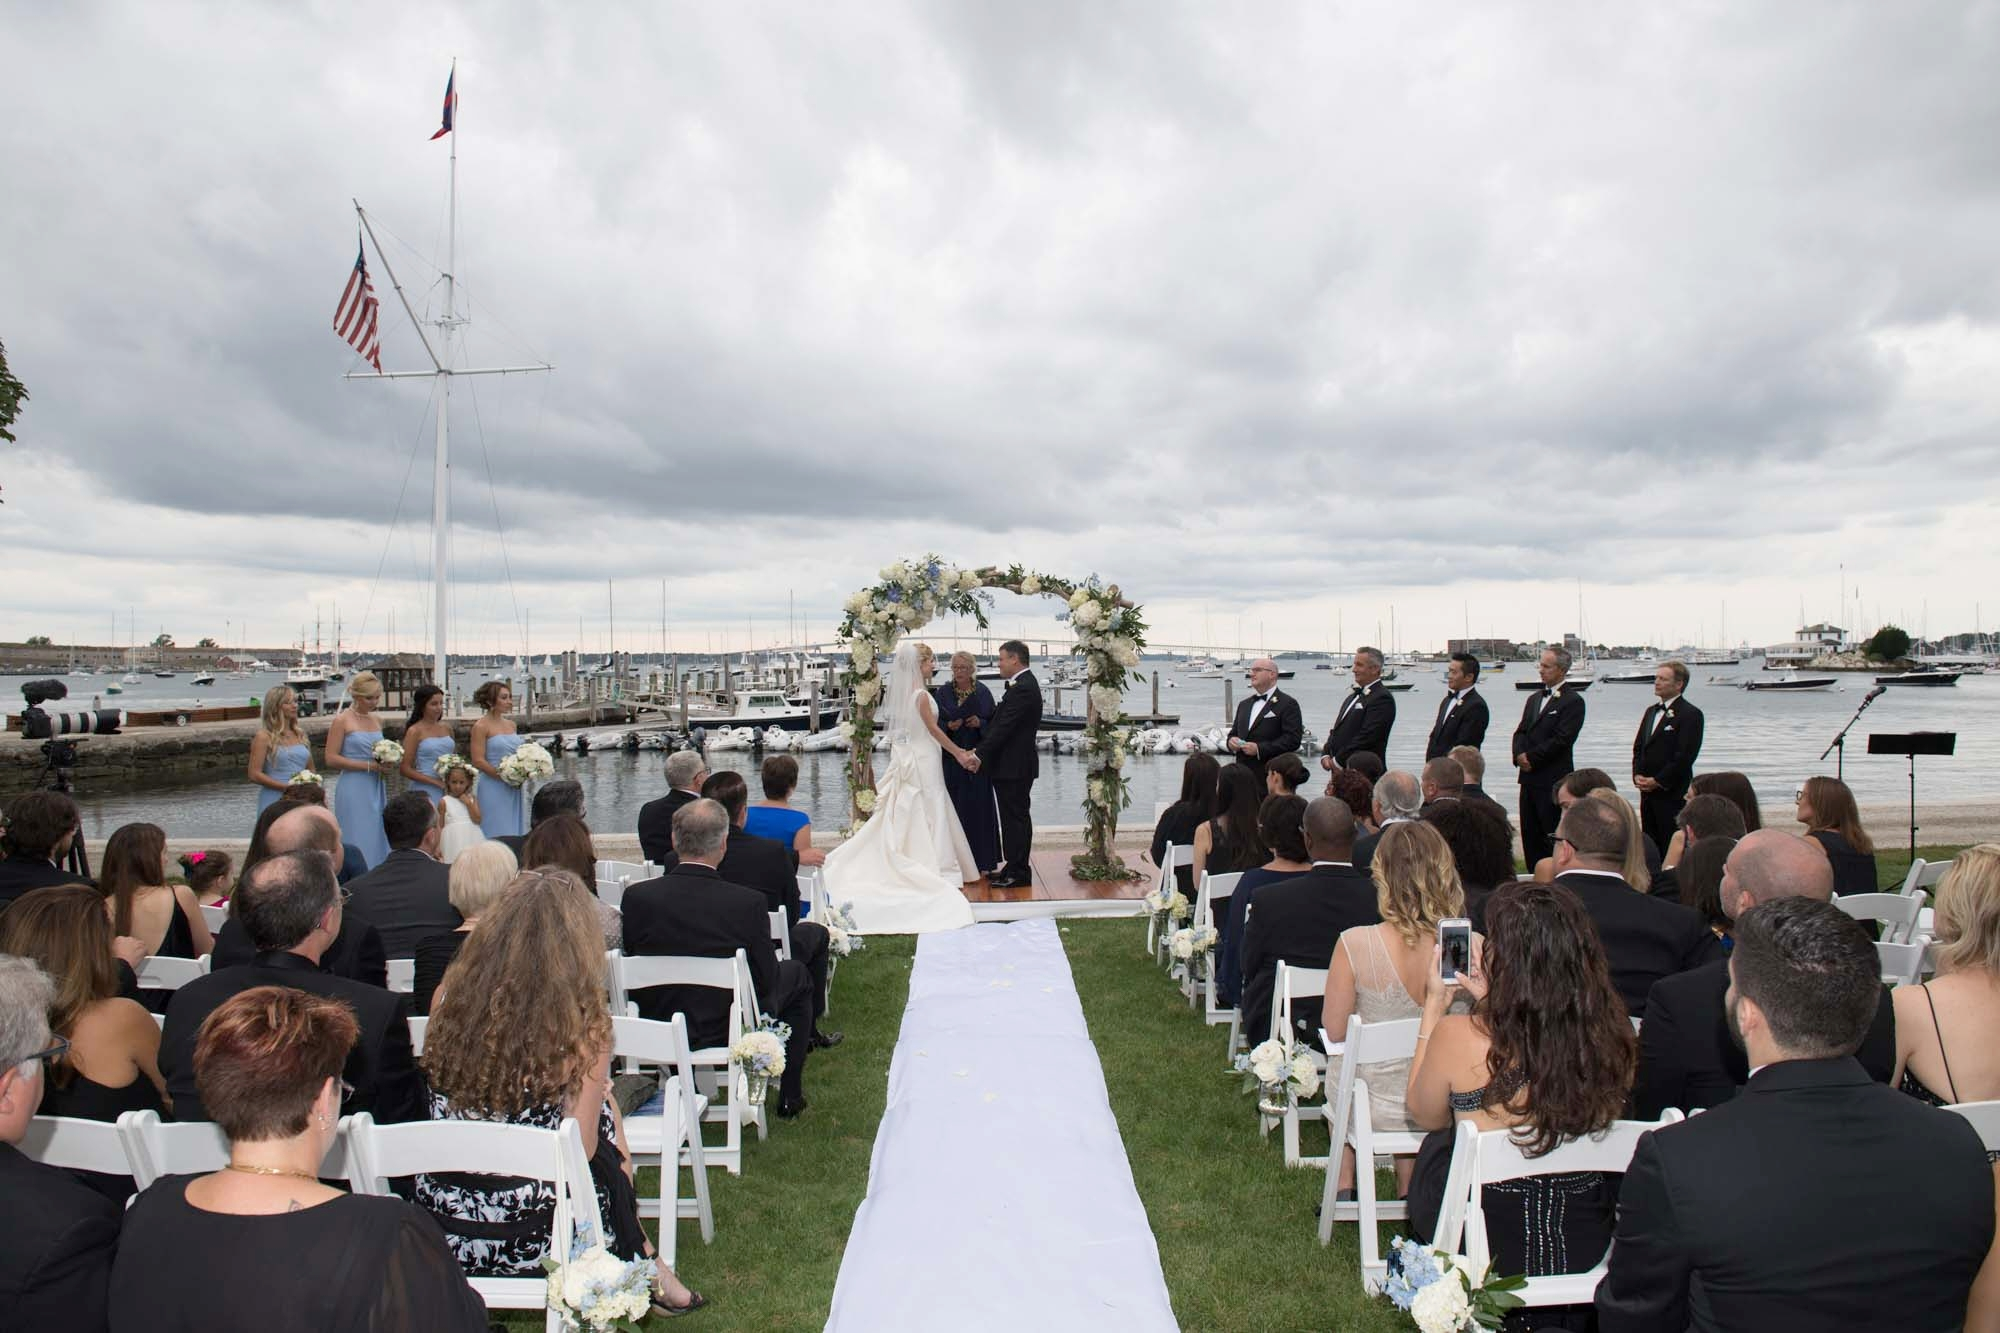 Newport-Rhode-Island-Wedding-Jamie-Levine-Photography-24.jpg